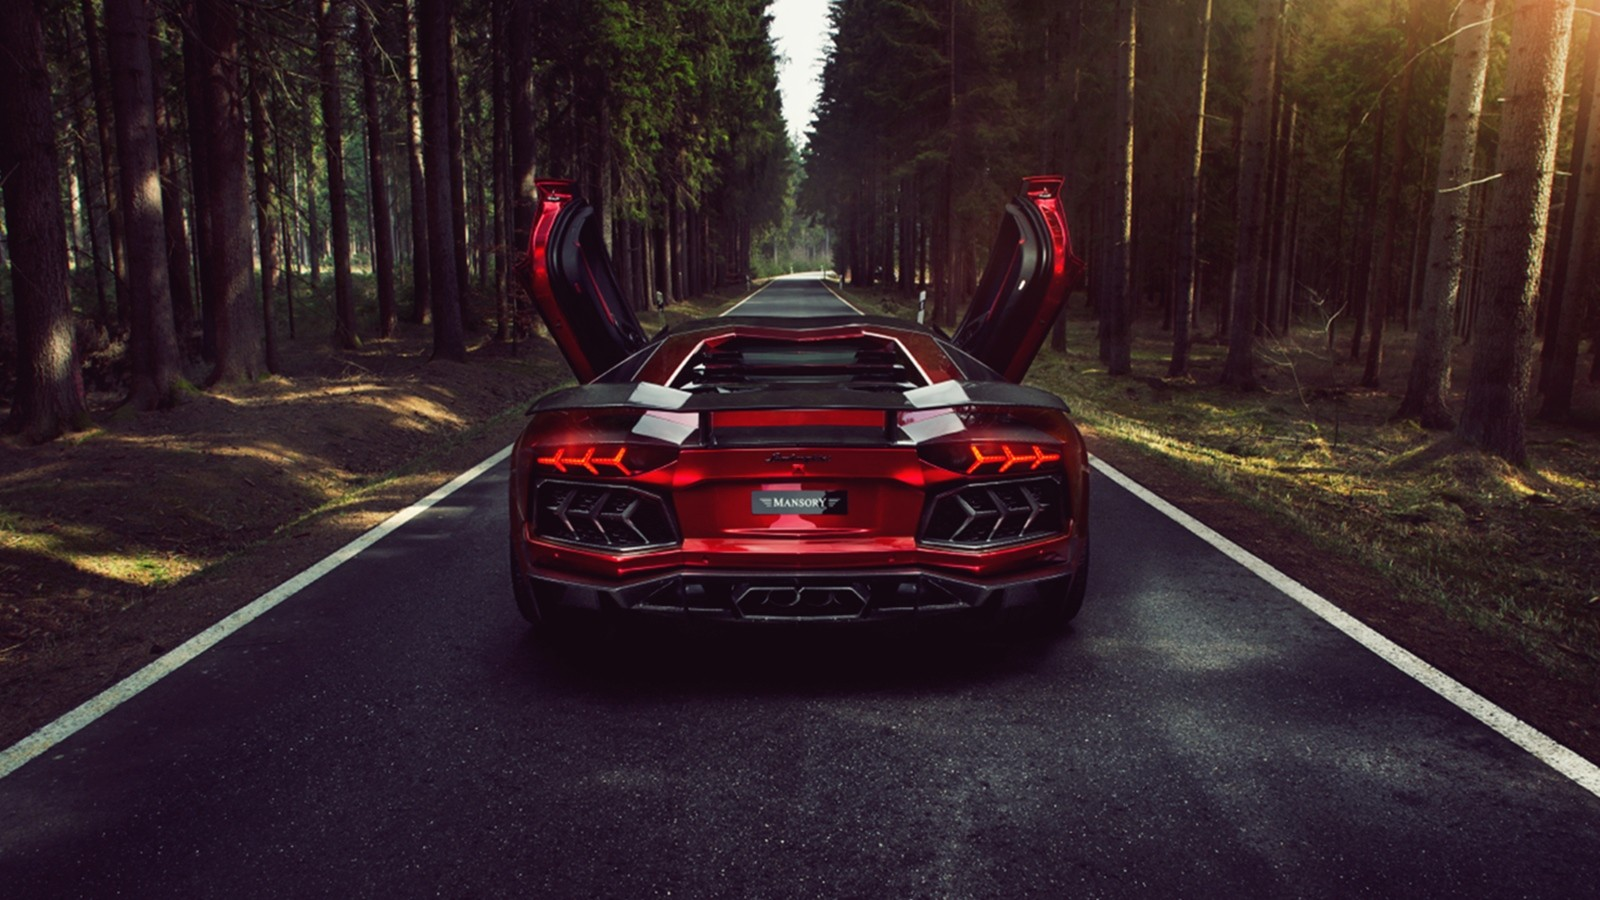 HD Desktop Wallpaper Exotic Cars  WallpaperSafari